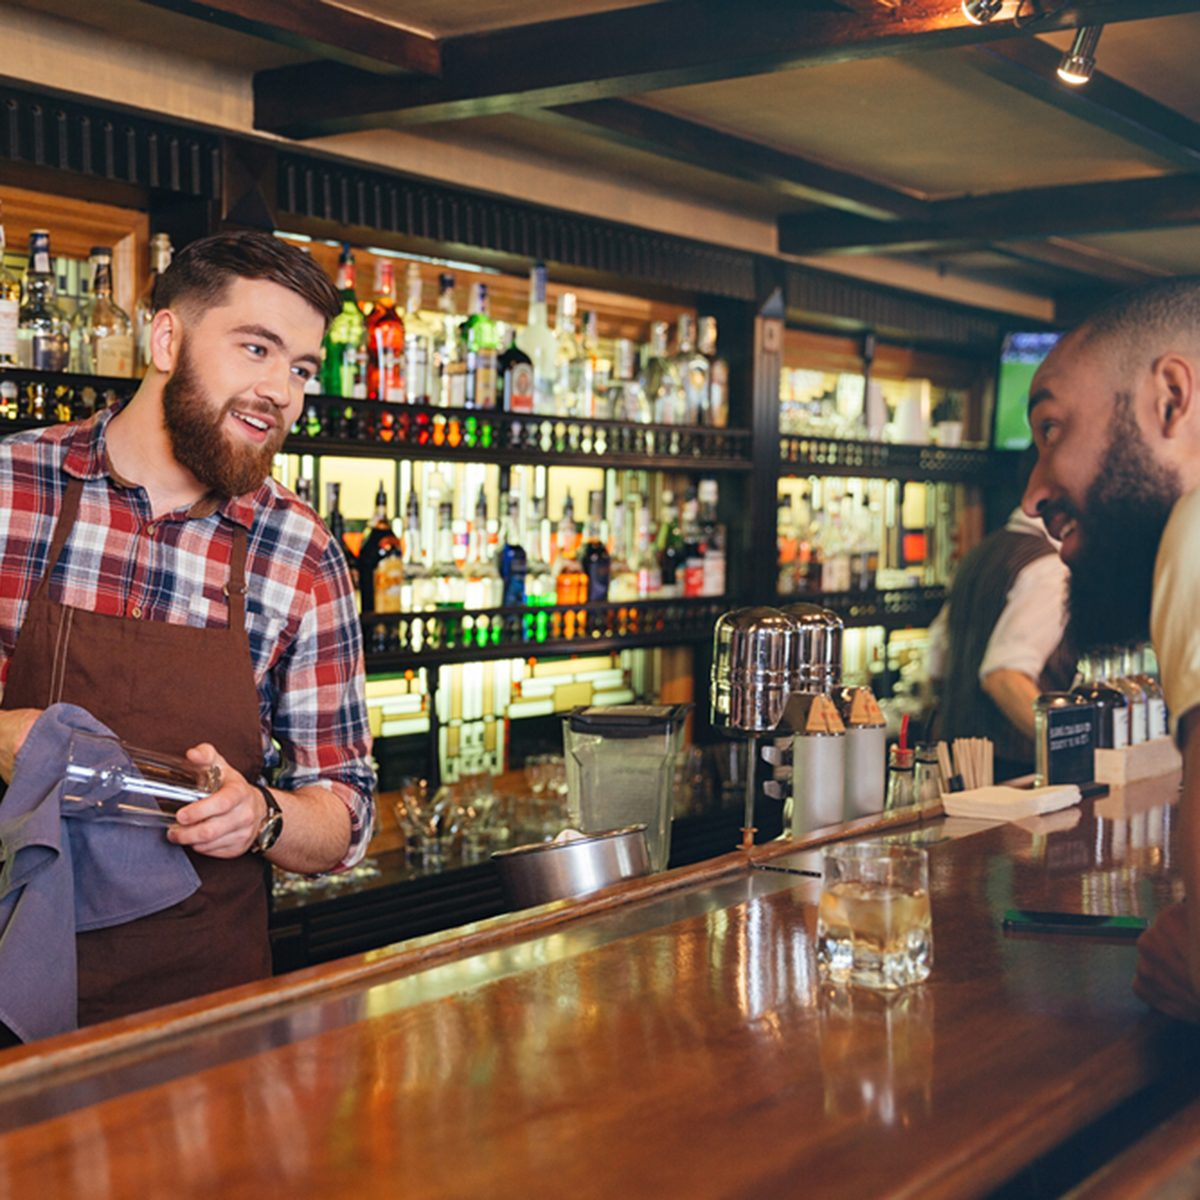 Smiling attractive young barman wiping glasses and talking to african american young man in bar; Shutterstock ID 521293036; Job (TFH, TOH, RD, BNB, CWM, CM): TOH